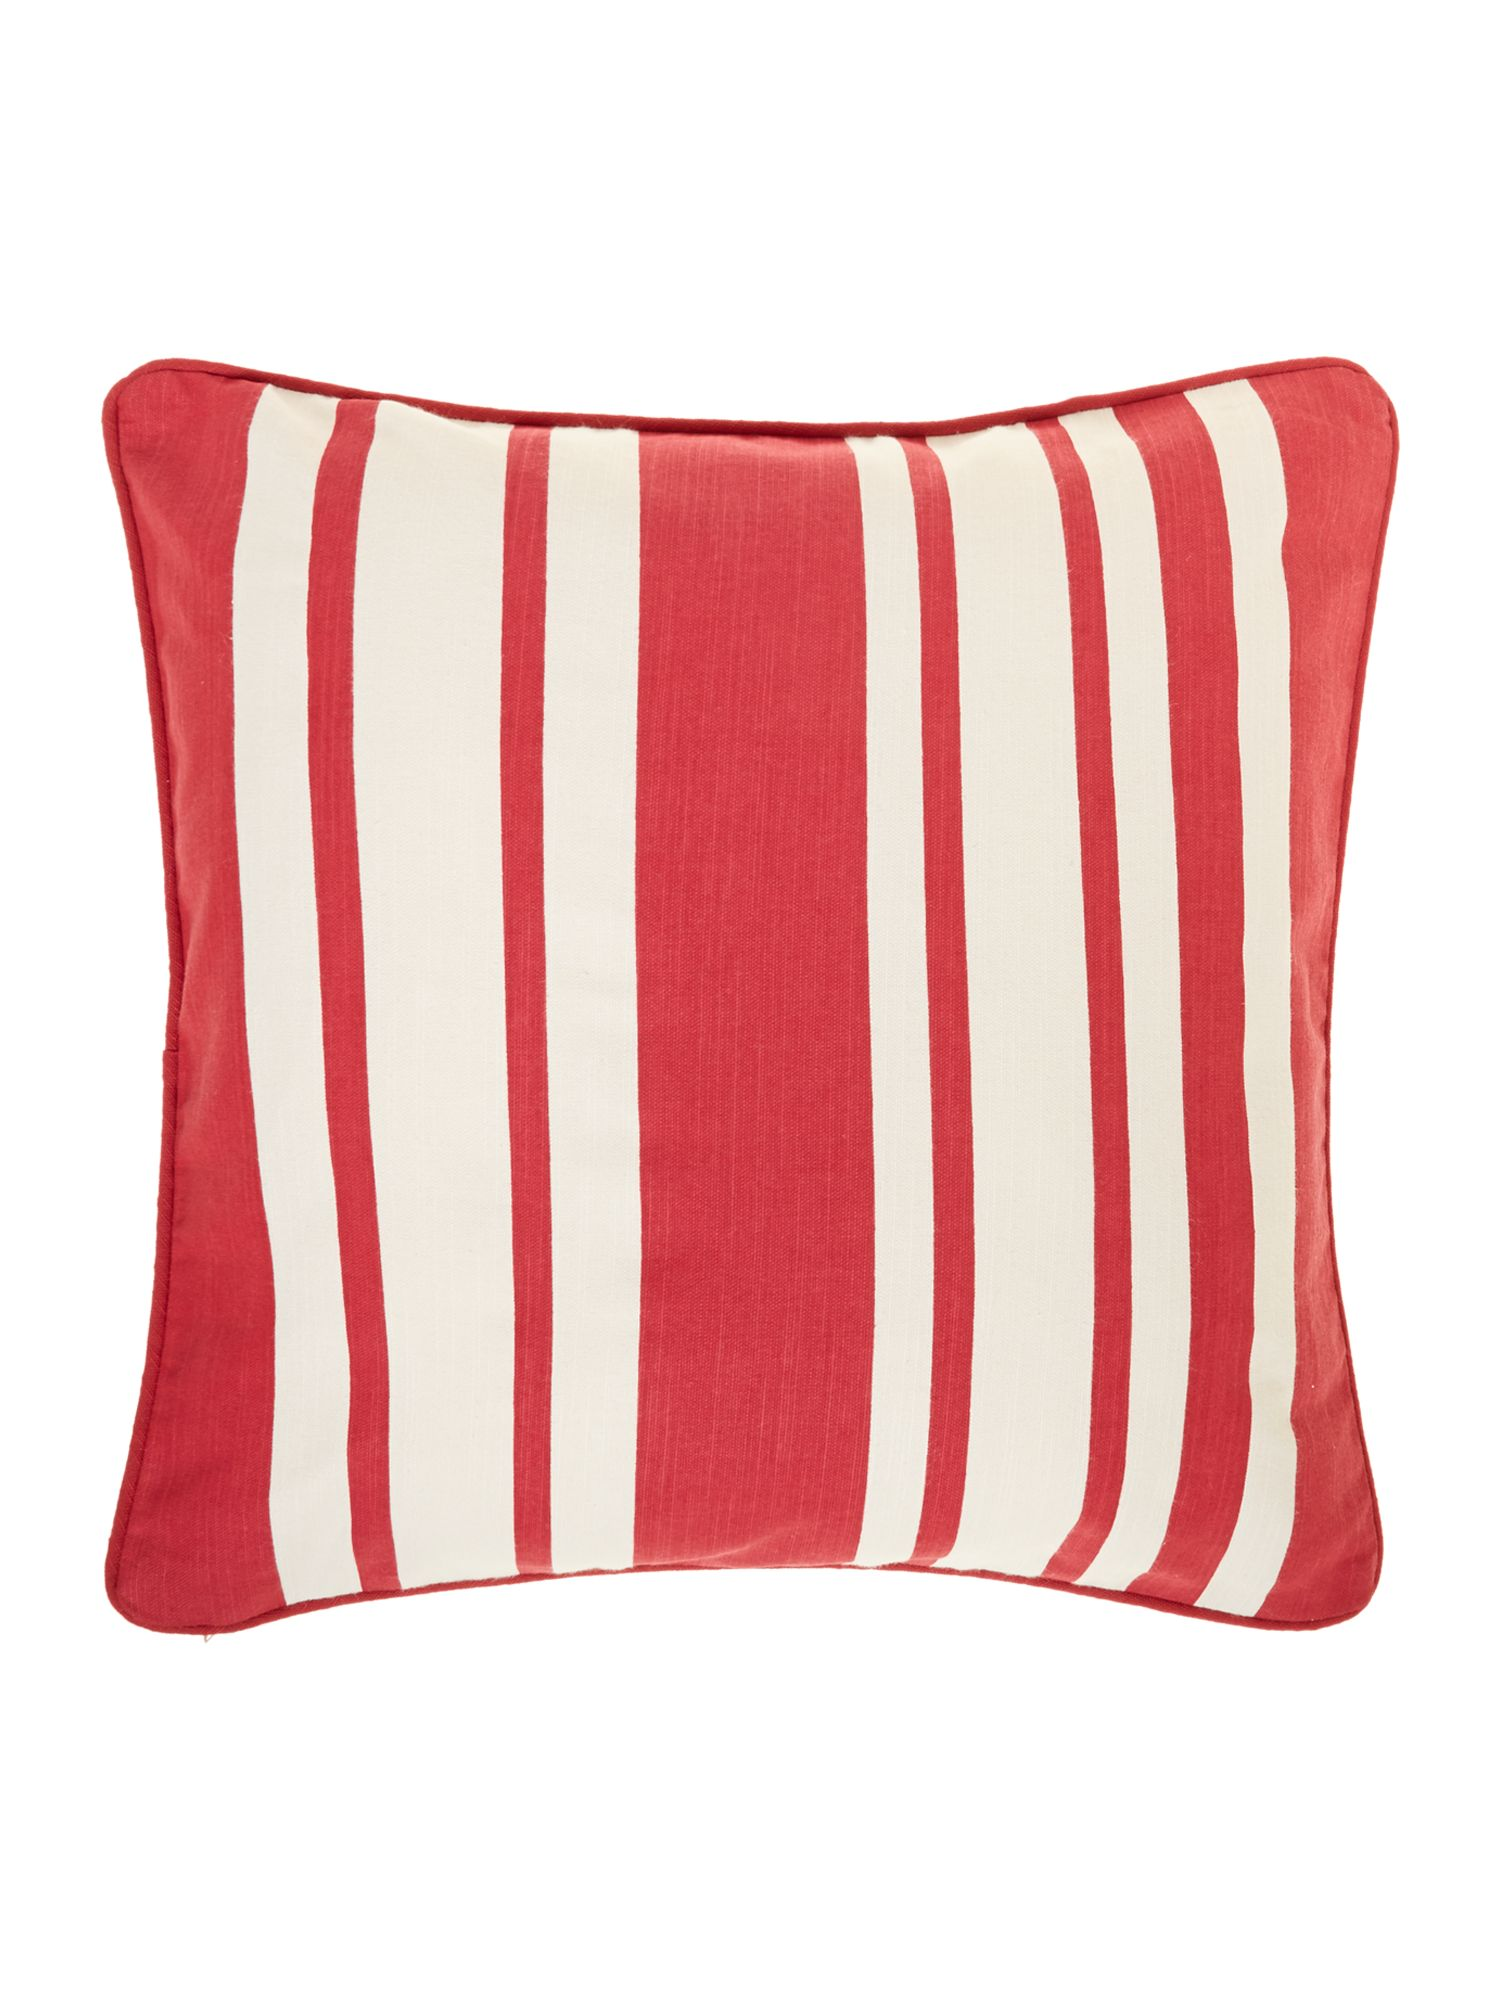 Stripe cotton cushion, red